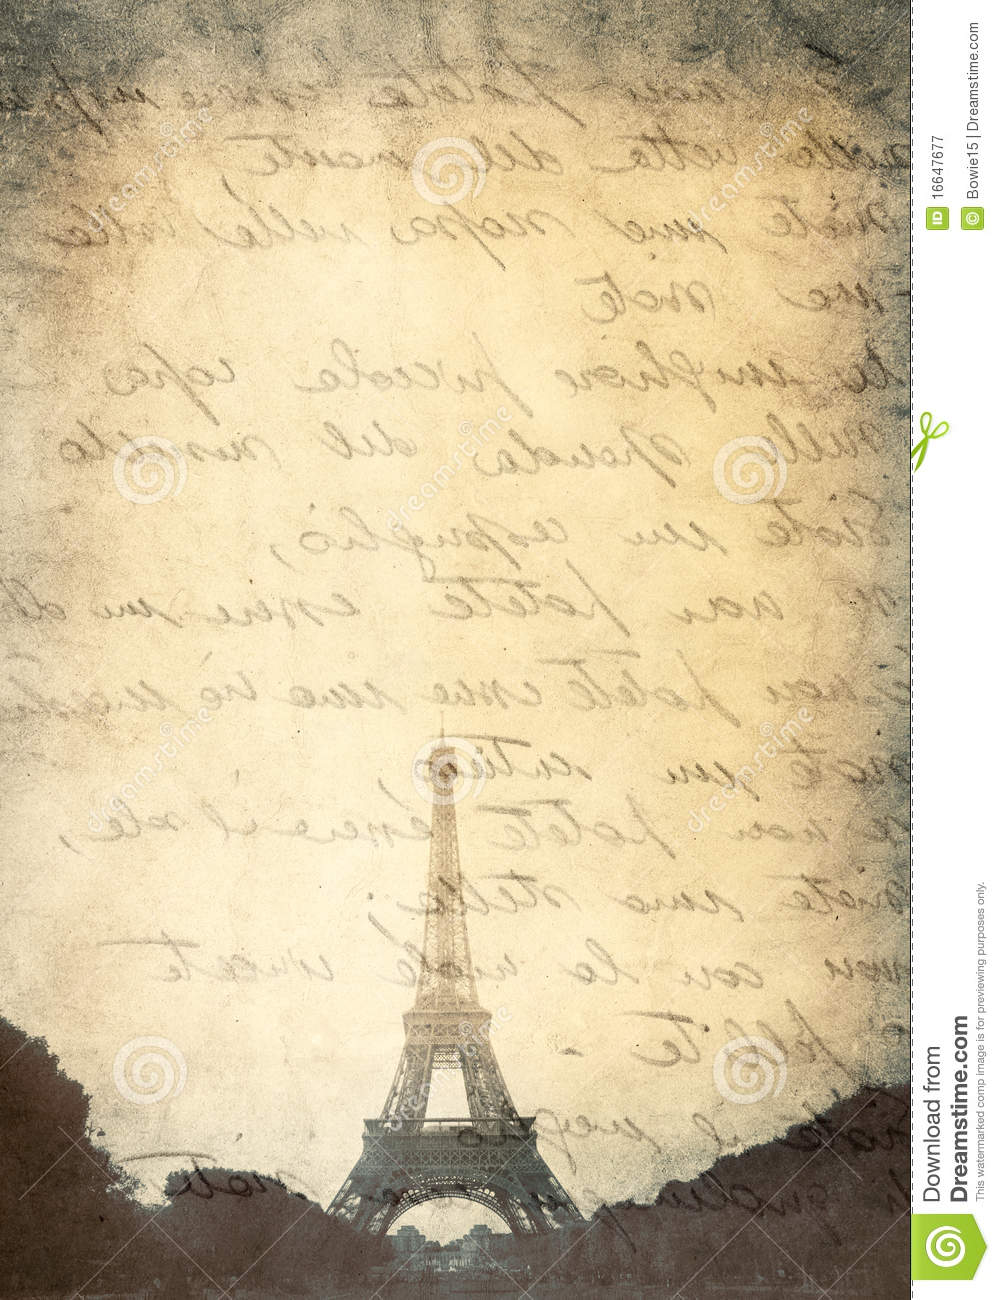 how to end a love letter in french